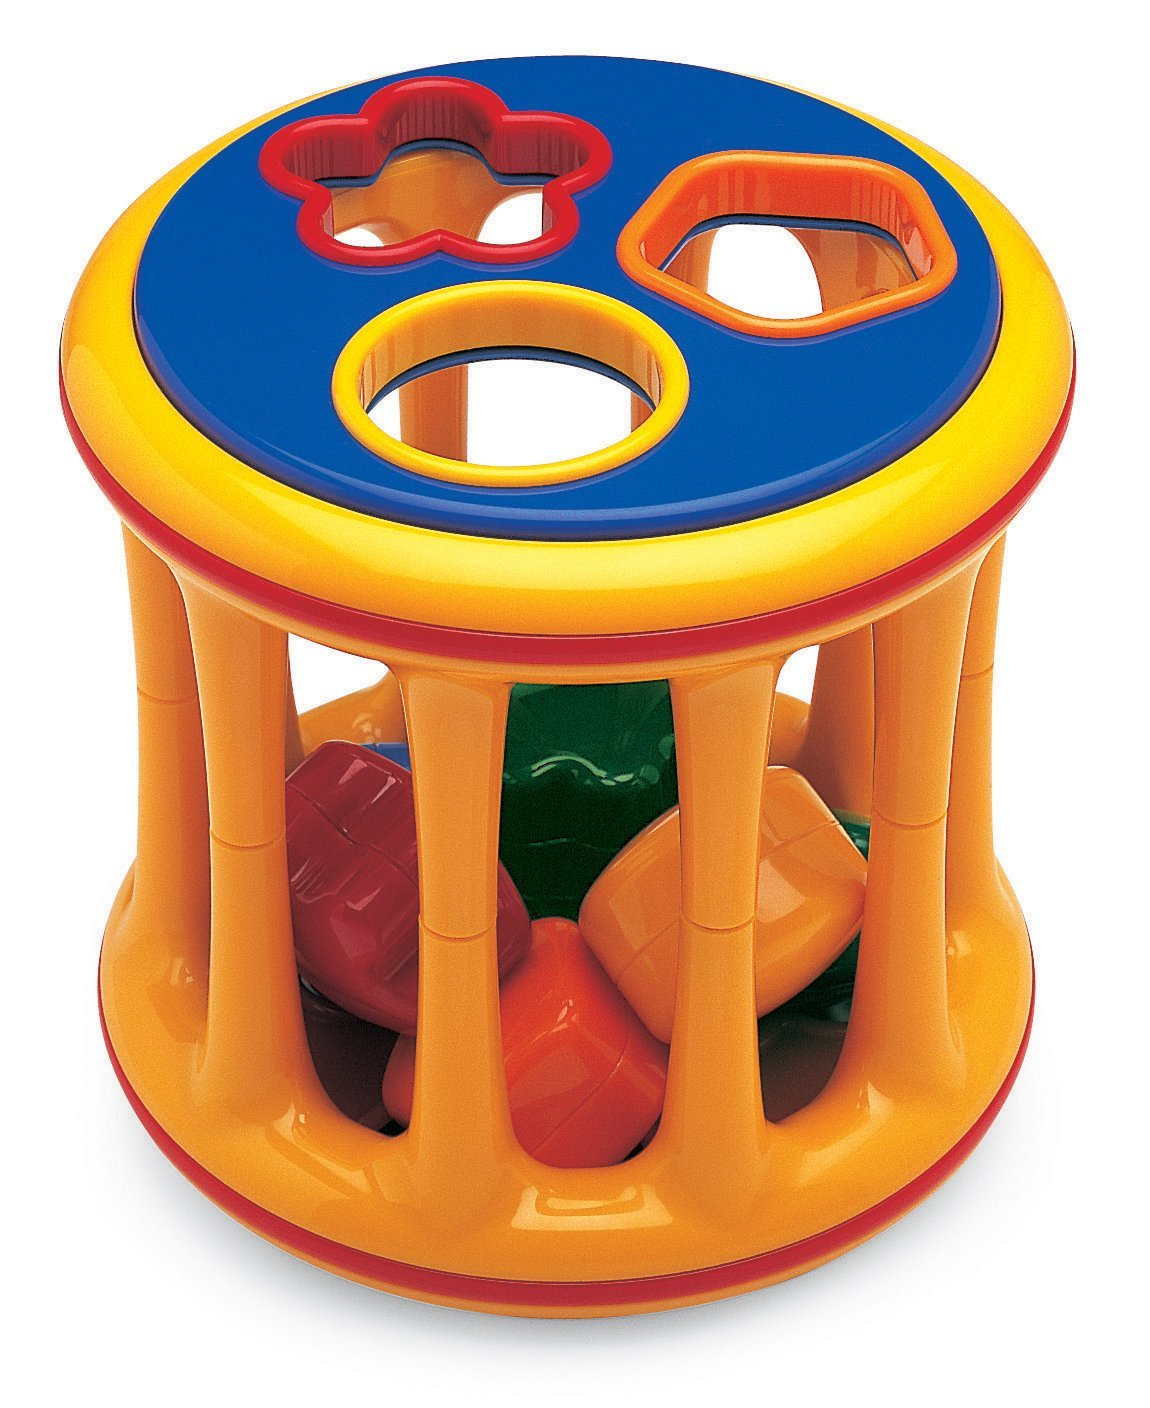 Shape sorter or puzzle toys with sounds